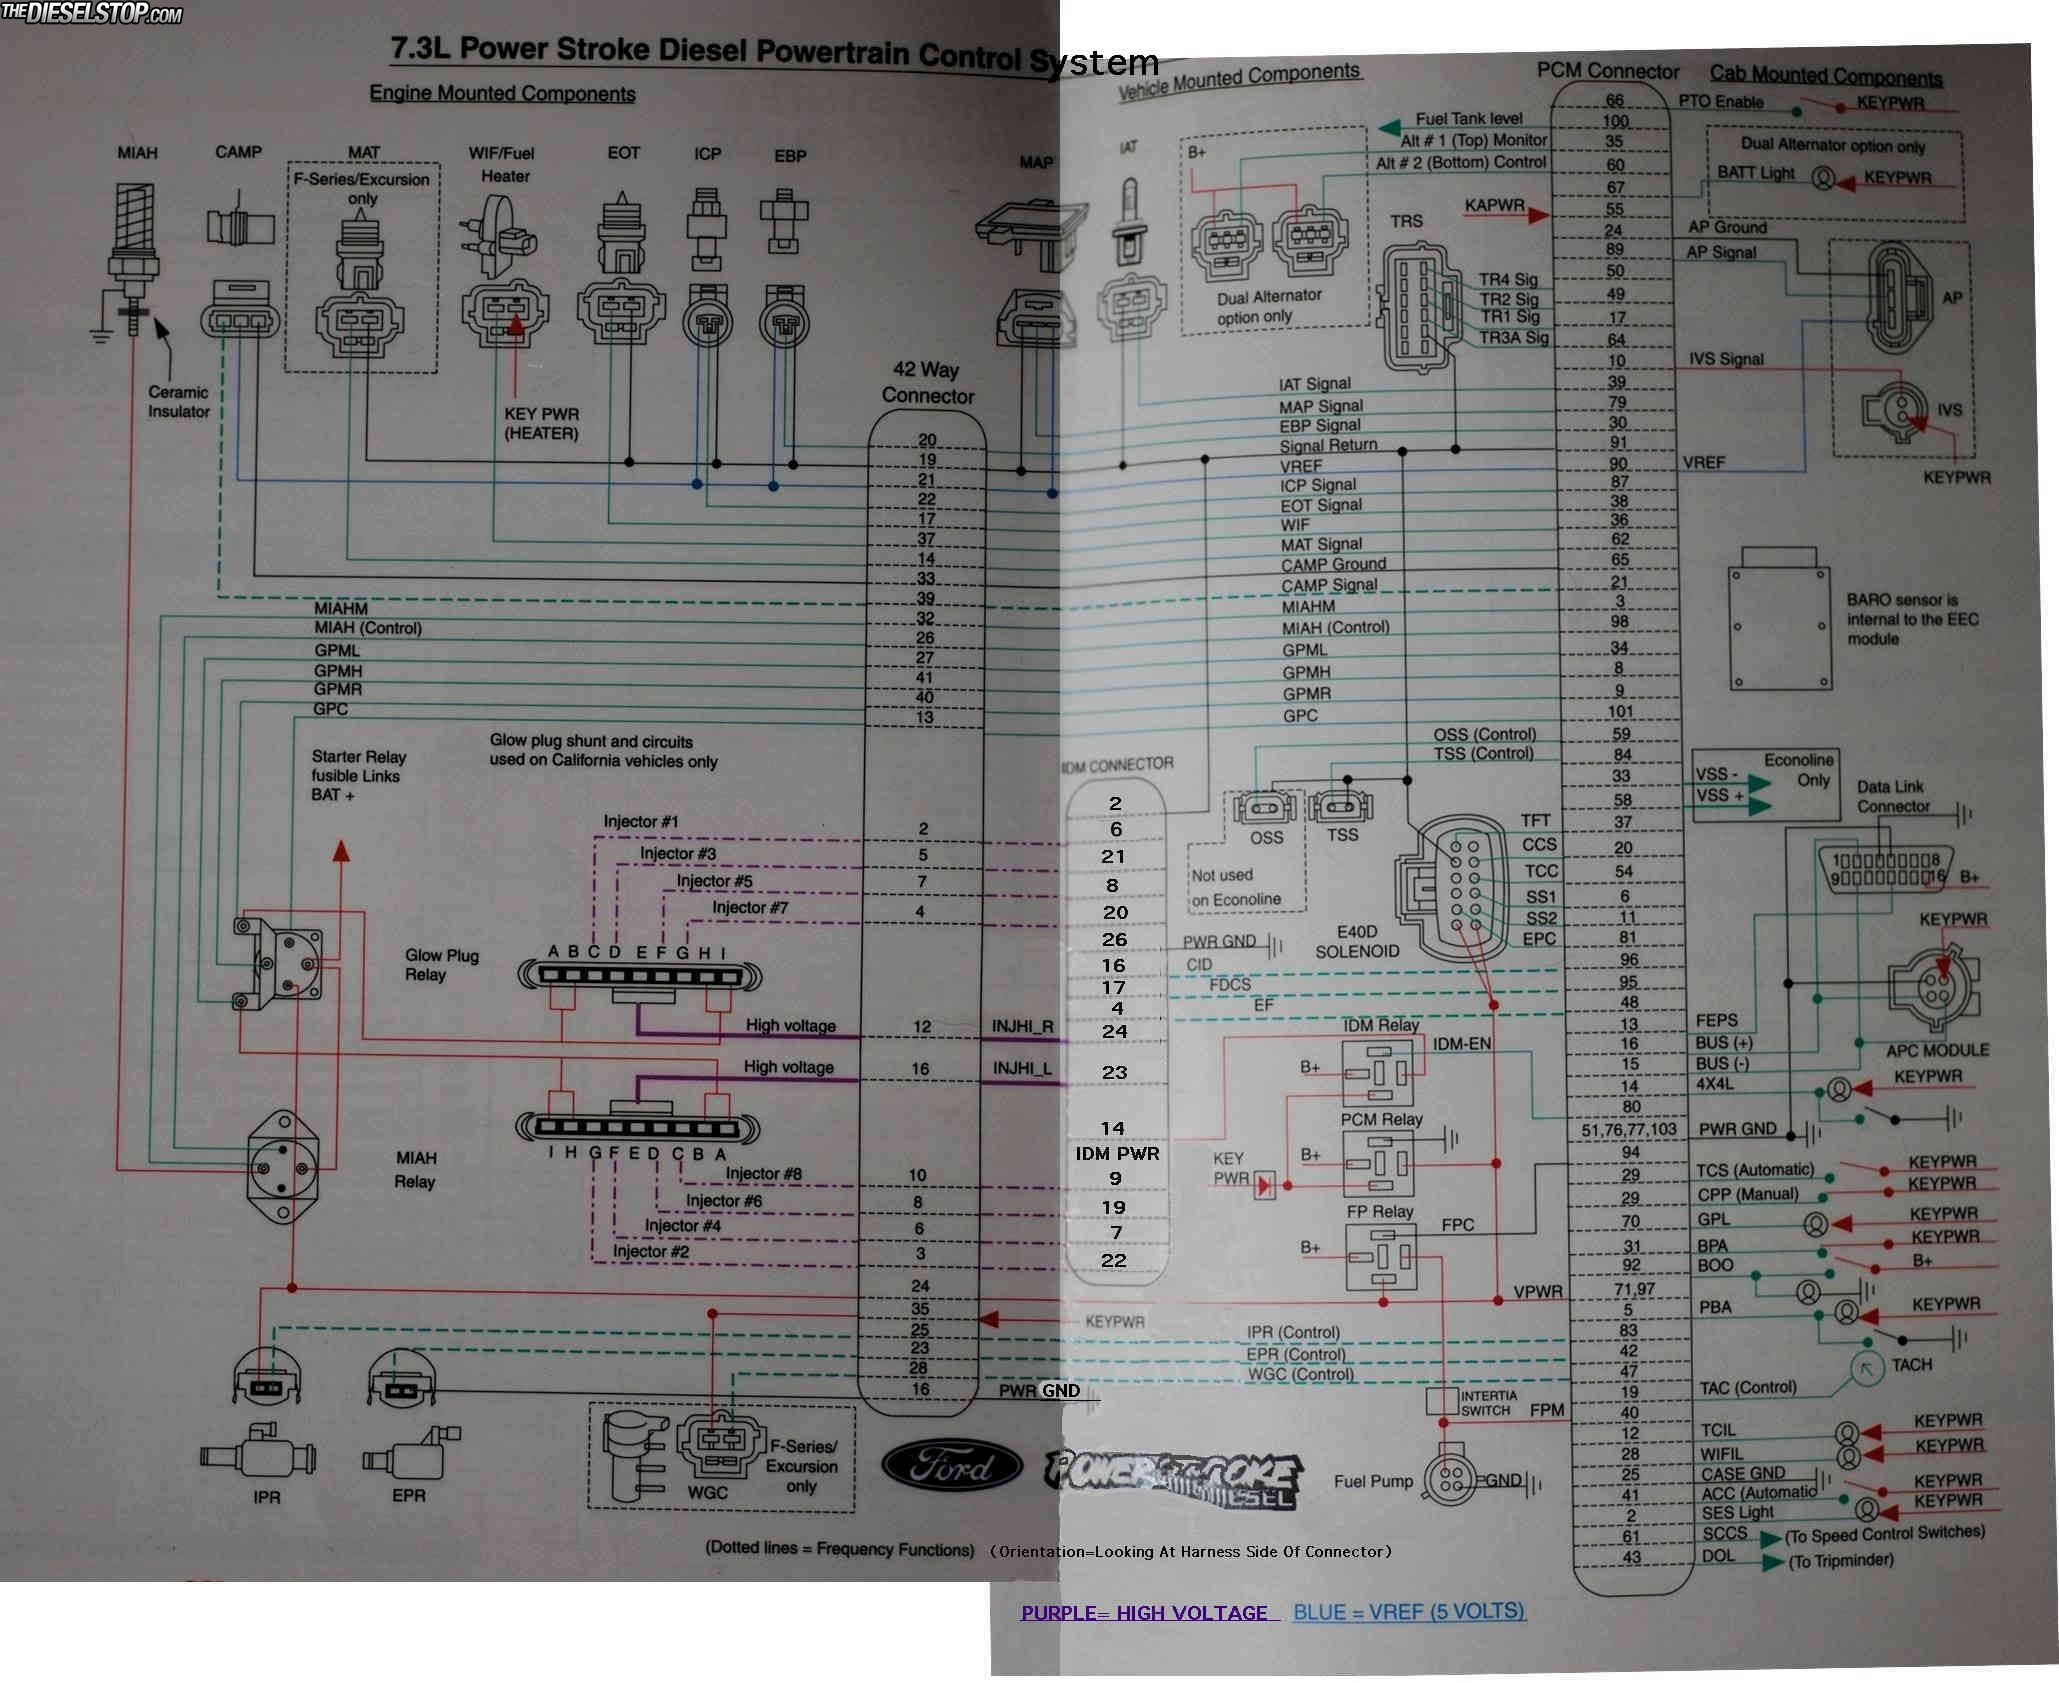 7 3 Powerstroke Parts Diagram 7 3l Wiring Schematic Printable Very Handy Diesel forum Of 7 3 Powerstroke Parts Diagram 6 0 Powerstroke Injector Wiring Diagram Reference Wiring Harness 7 3